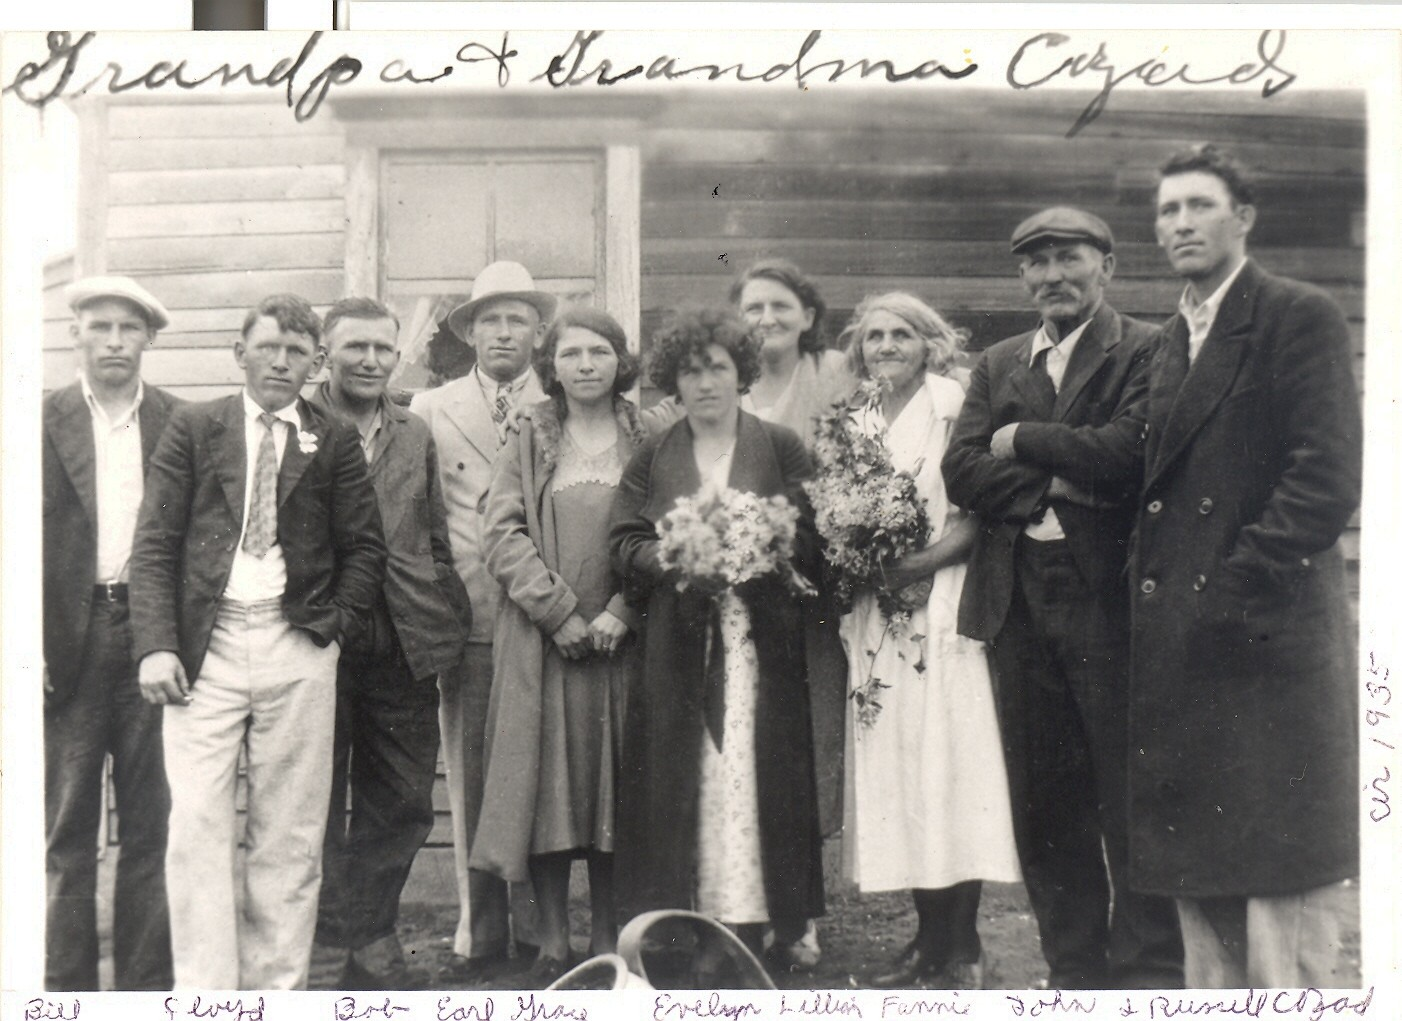 John and Fannie Cozad and family abt. 1935